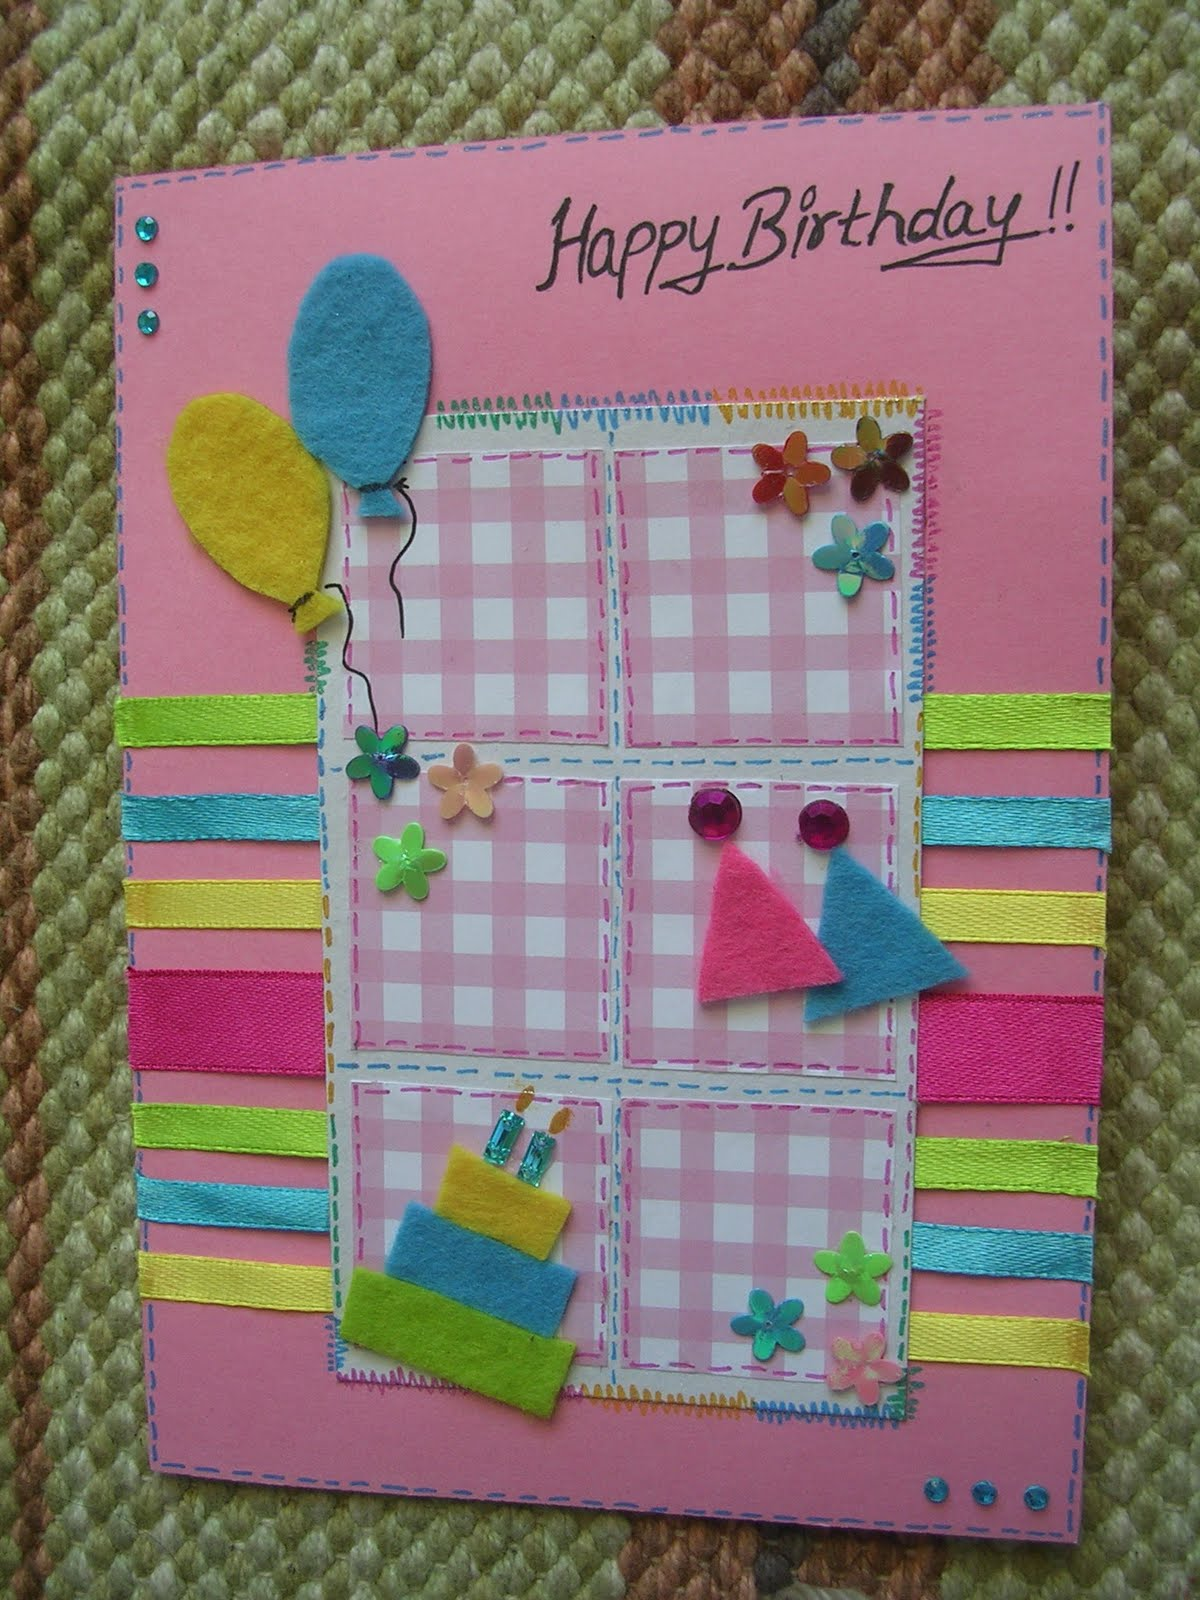 Collections The Handmade Stuff. 40th Birthday Handmade Card Ideas ...